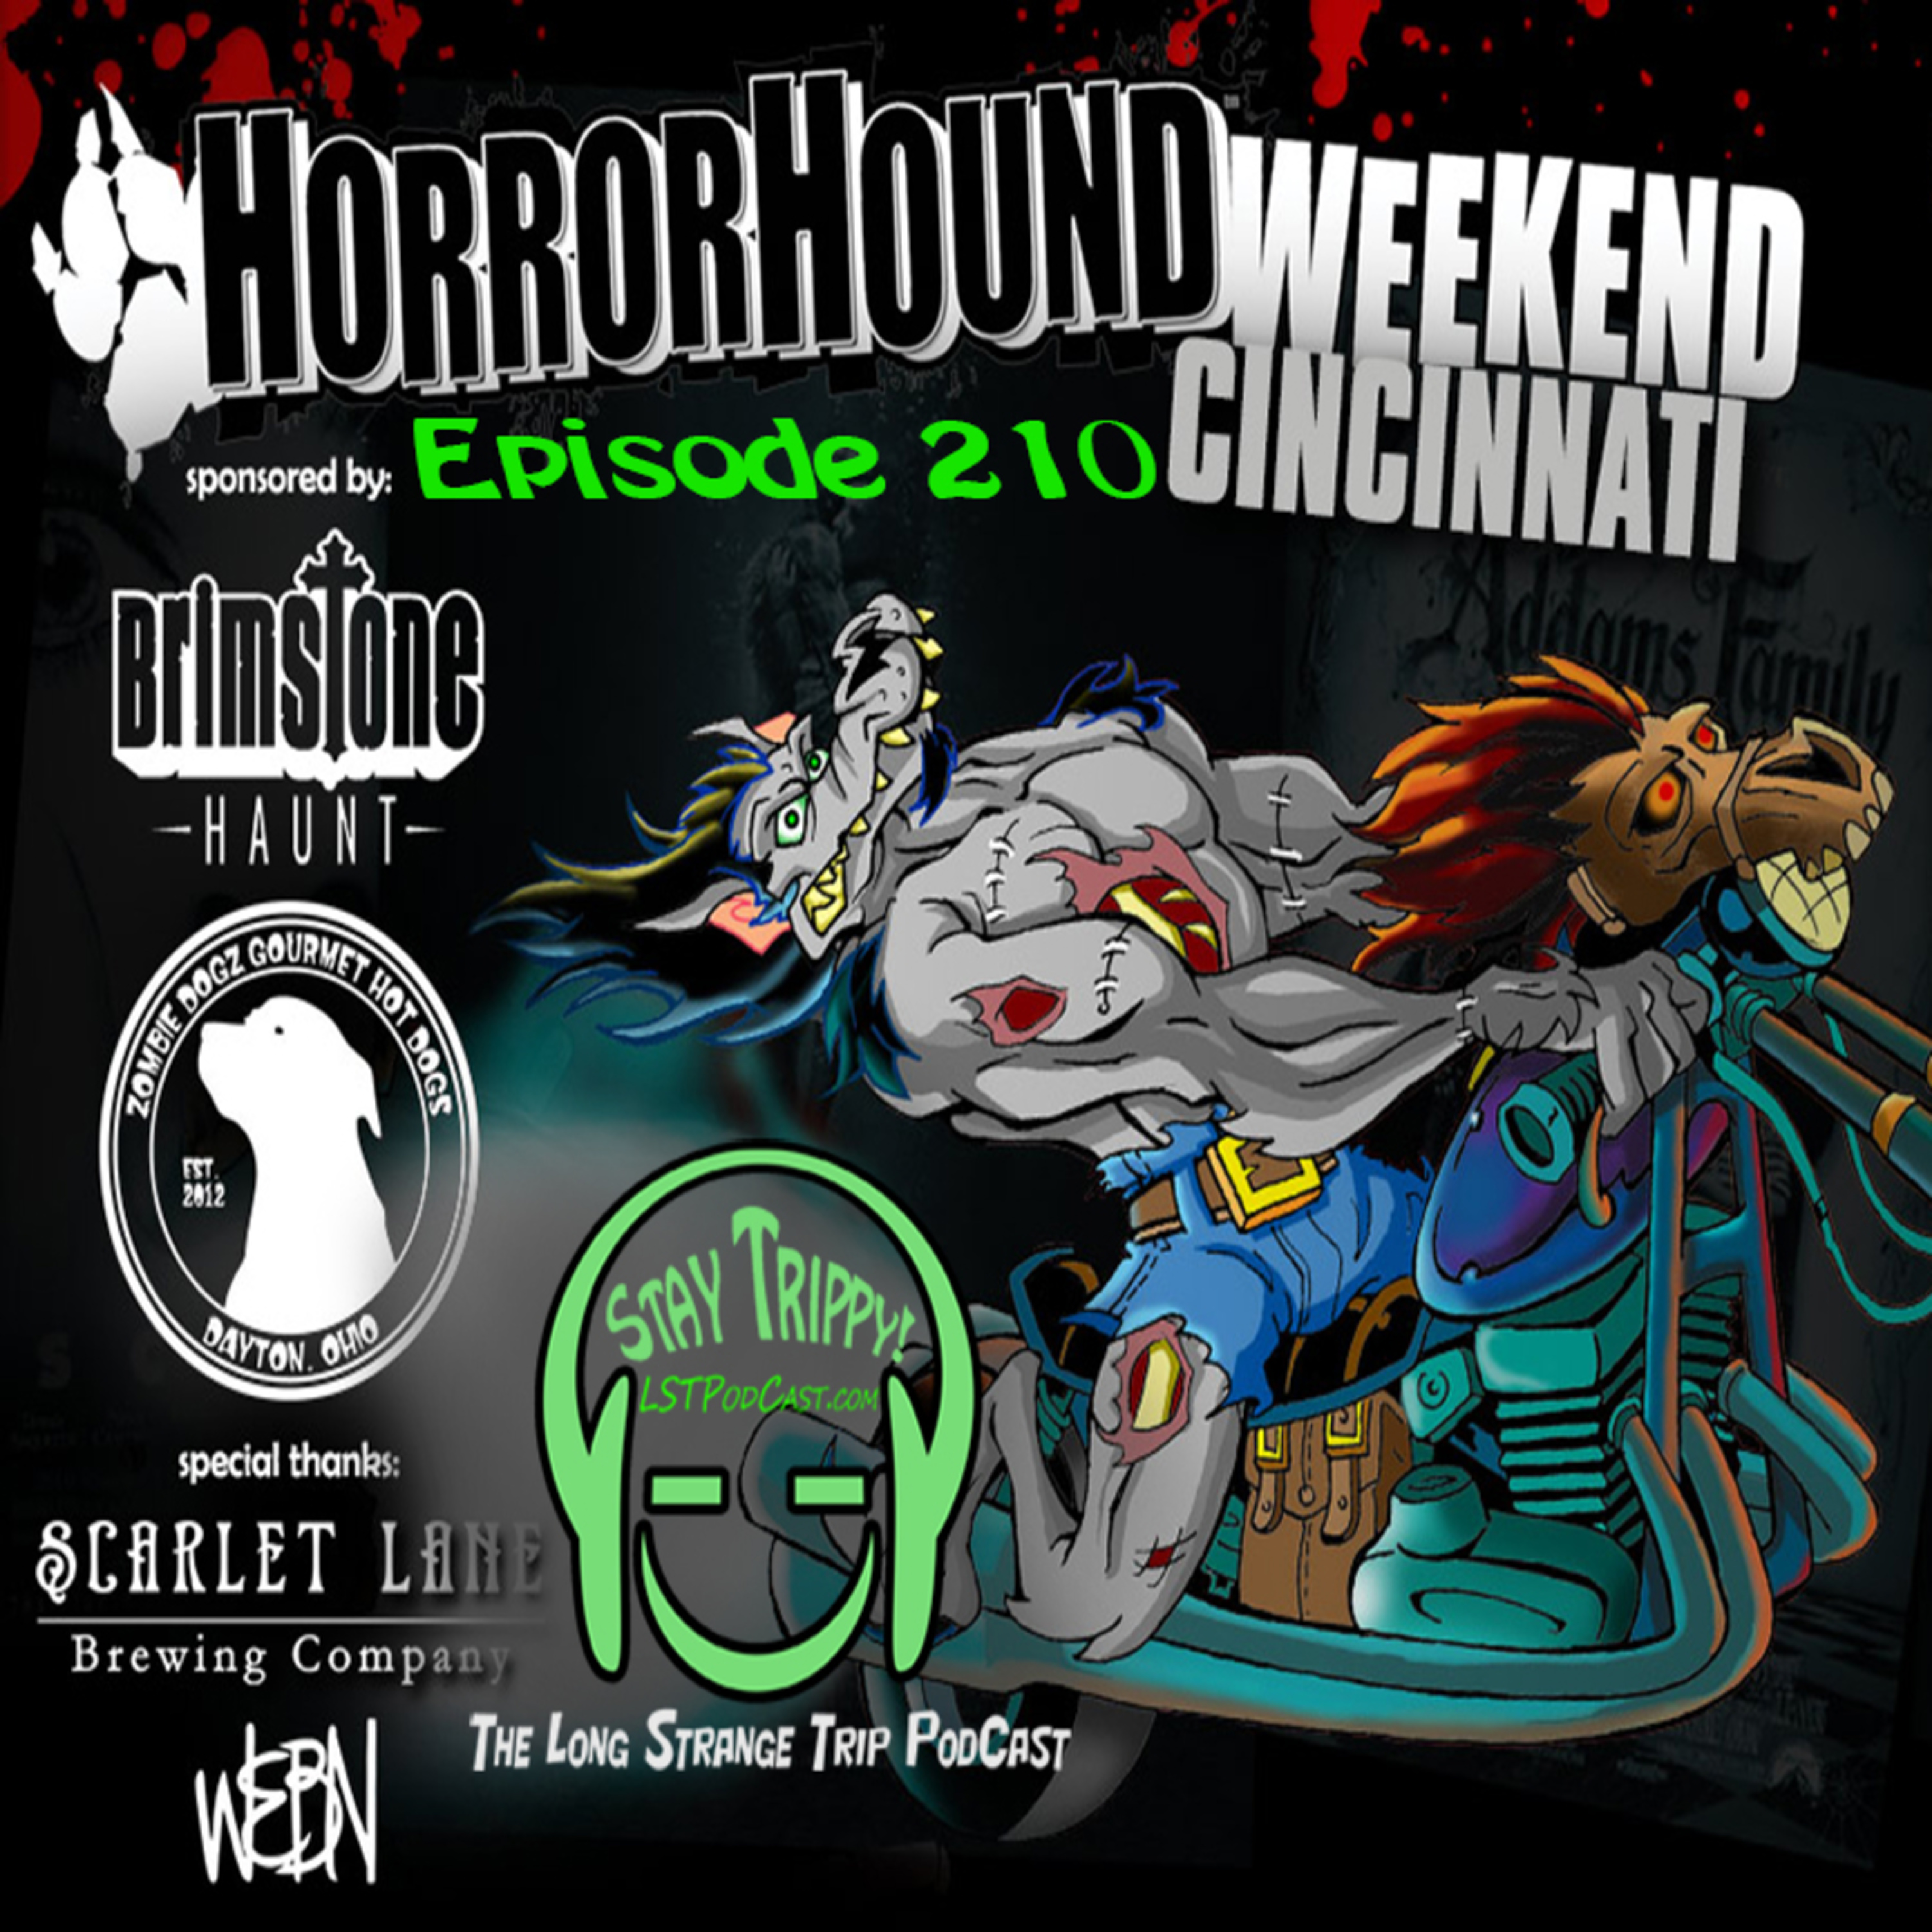 LST 210 - Pancho Moler, Sarah Schoofs, and more from Horror Hound Weekend Cincy 2019